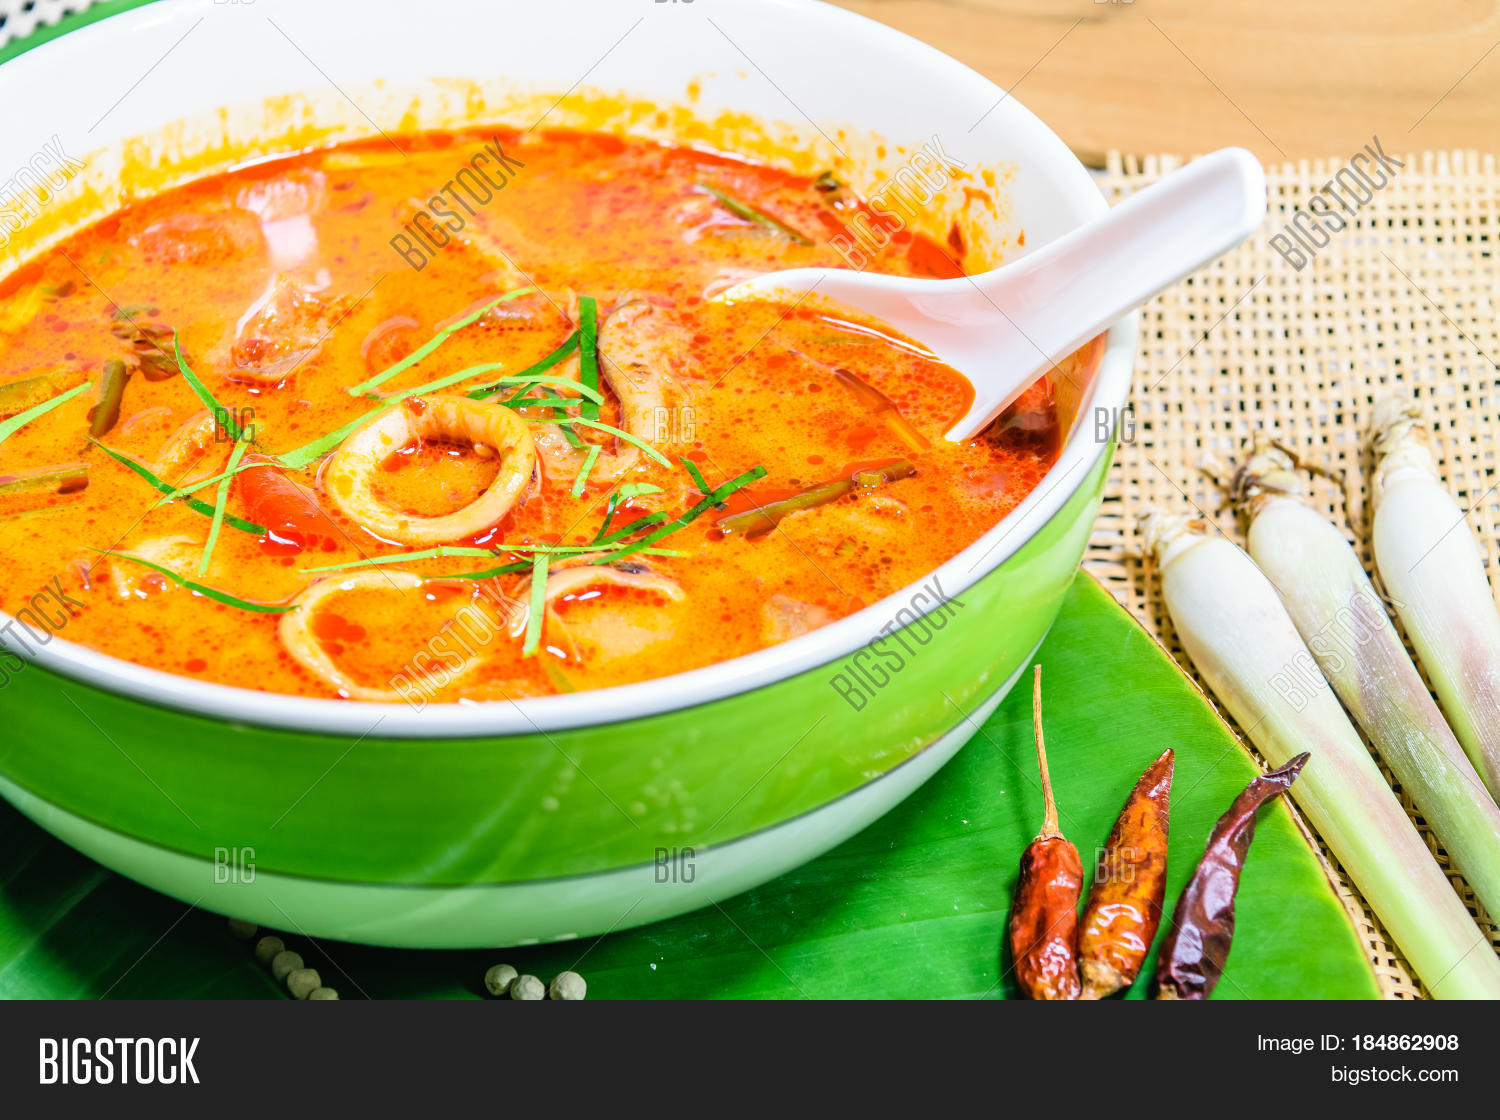 Tom yum thai spice soup thai food image photo bigstock for 8 spices thai cuisine